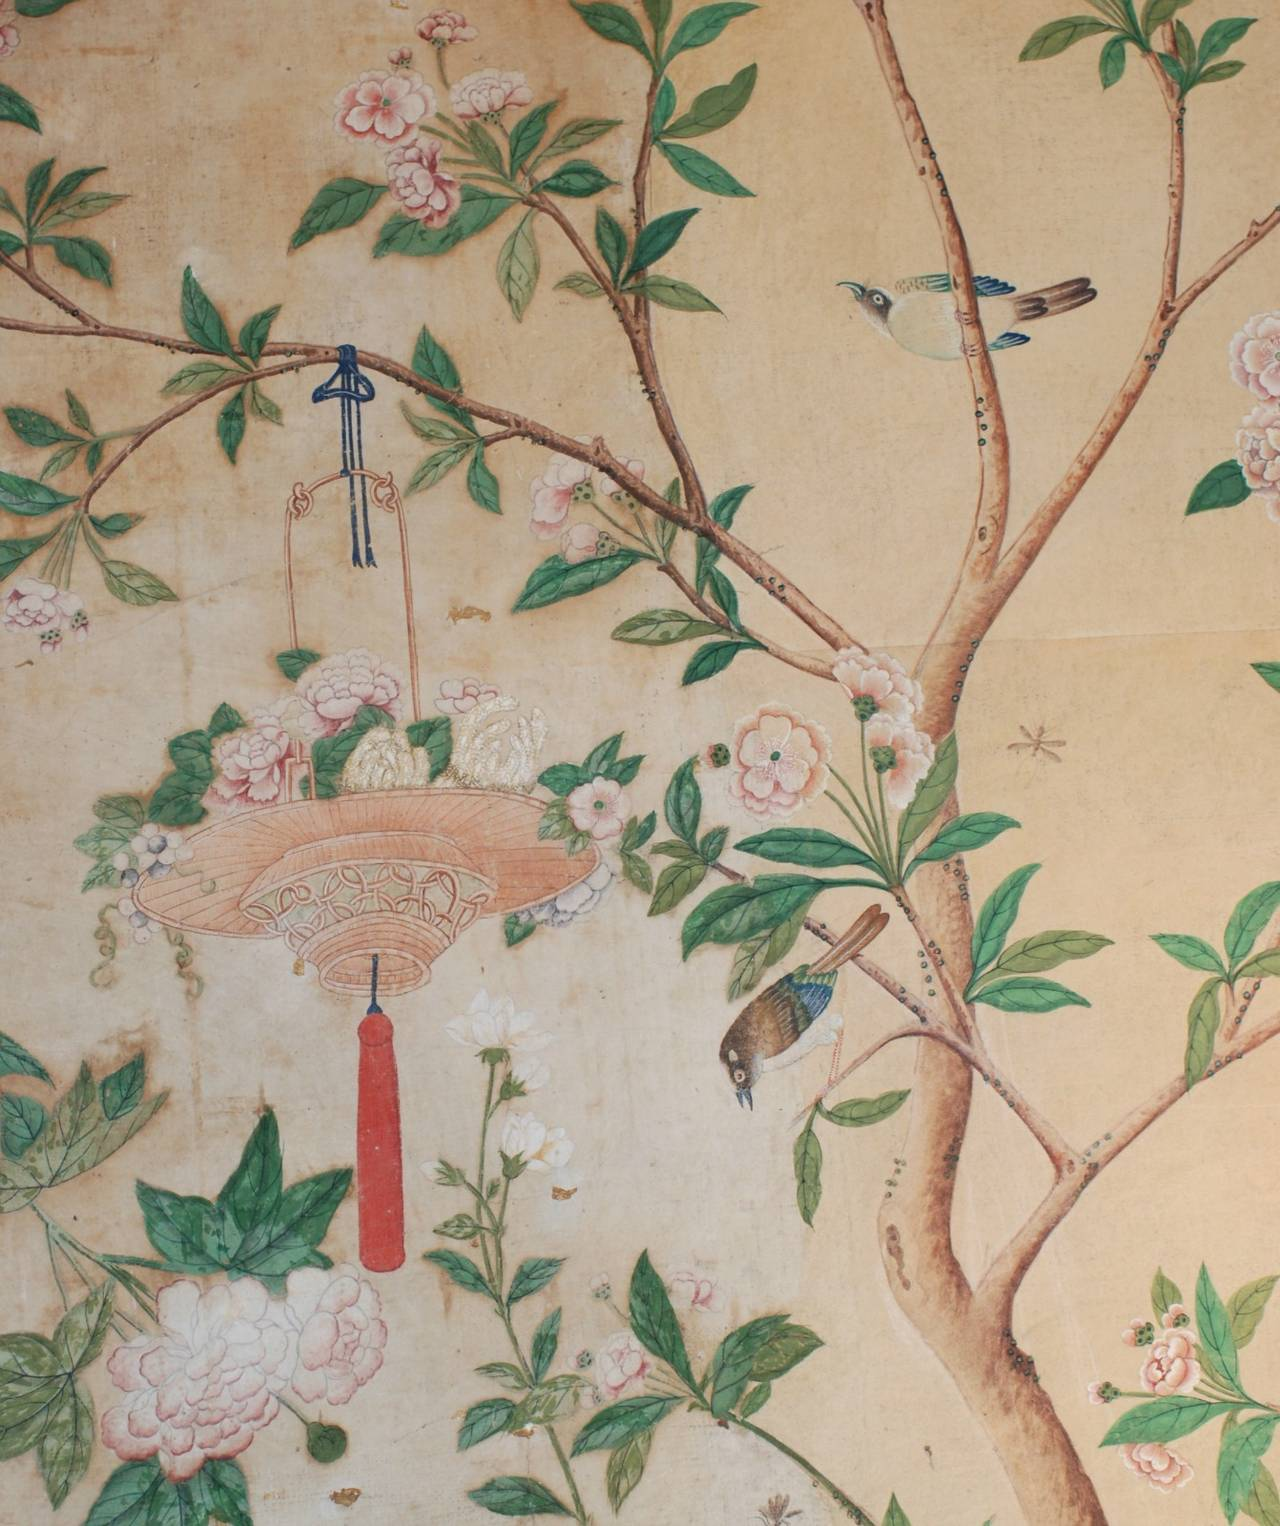 18th century wallpaper crivelli - photo #44